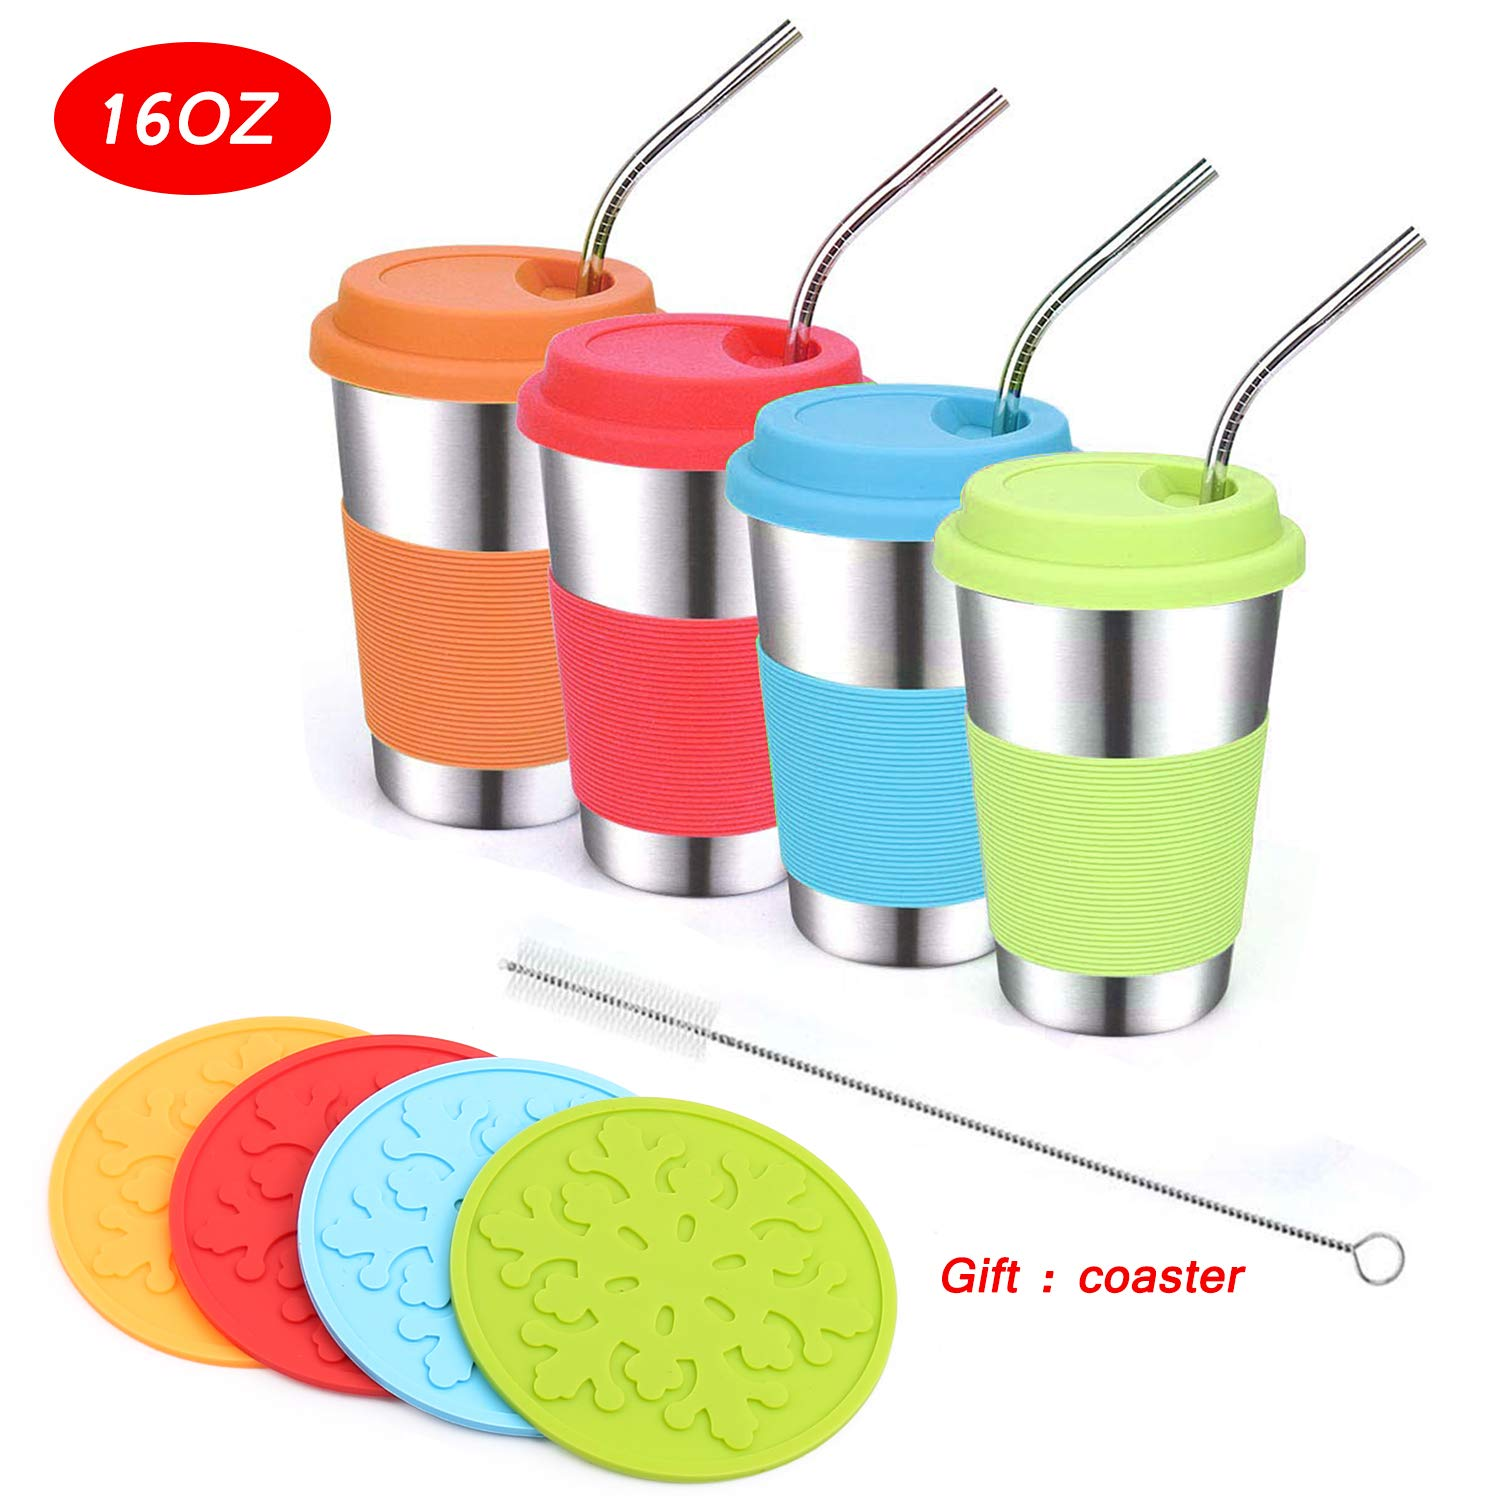 Stainless Steel Kids Cups with Lids and Straws,Vermida 4 Pack 16oz Metal Kids Straw Cups with Lids,Spill Proof Sippy Cups with Straws,Unbreakable Drinking Cups for Kids and Toddlers